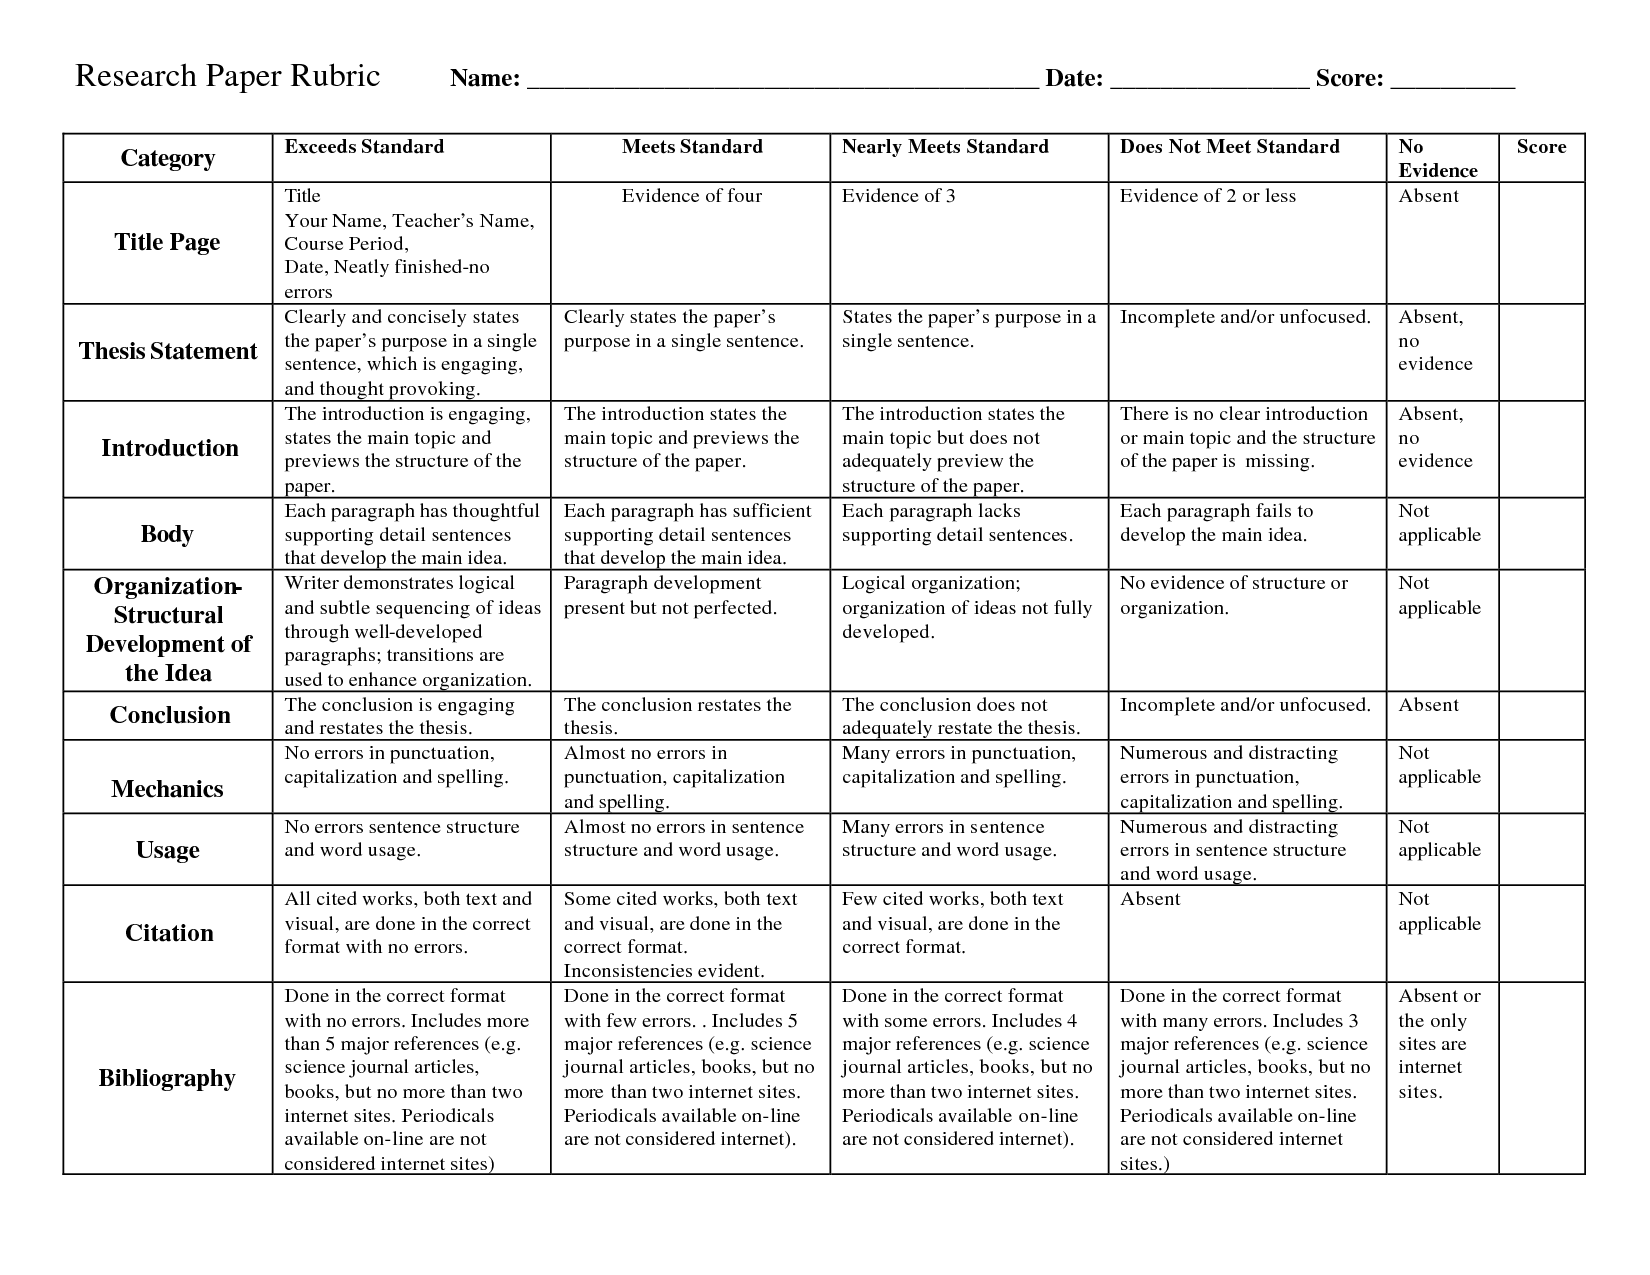 research paper rubric college The ideas are arranged logically to support the purpose or argument they flow smoothly from one to another and are clearly linked to each other the reader can follow the line of reasoning the ideas are arranged logically to support the central purpose or argument they are usually clearly linked to each other for.